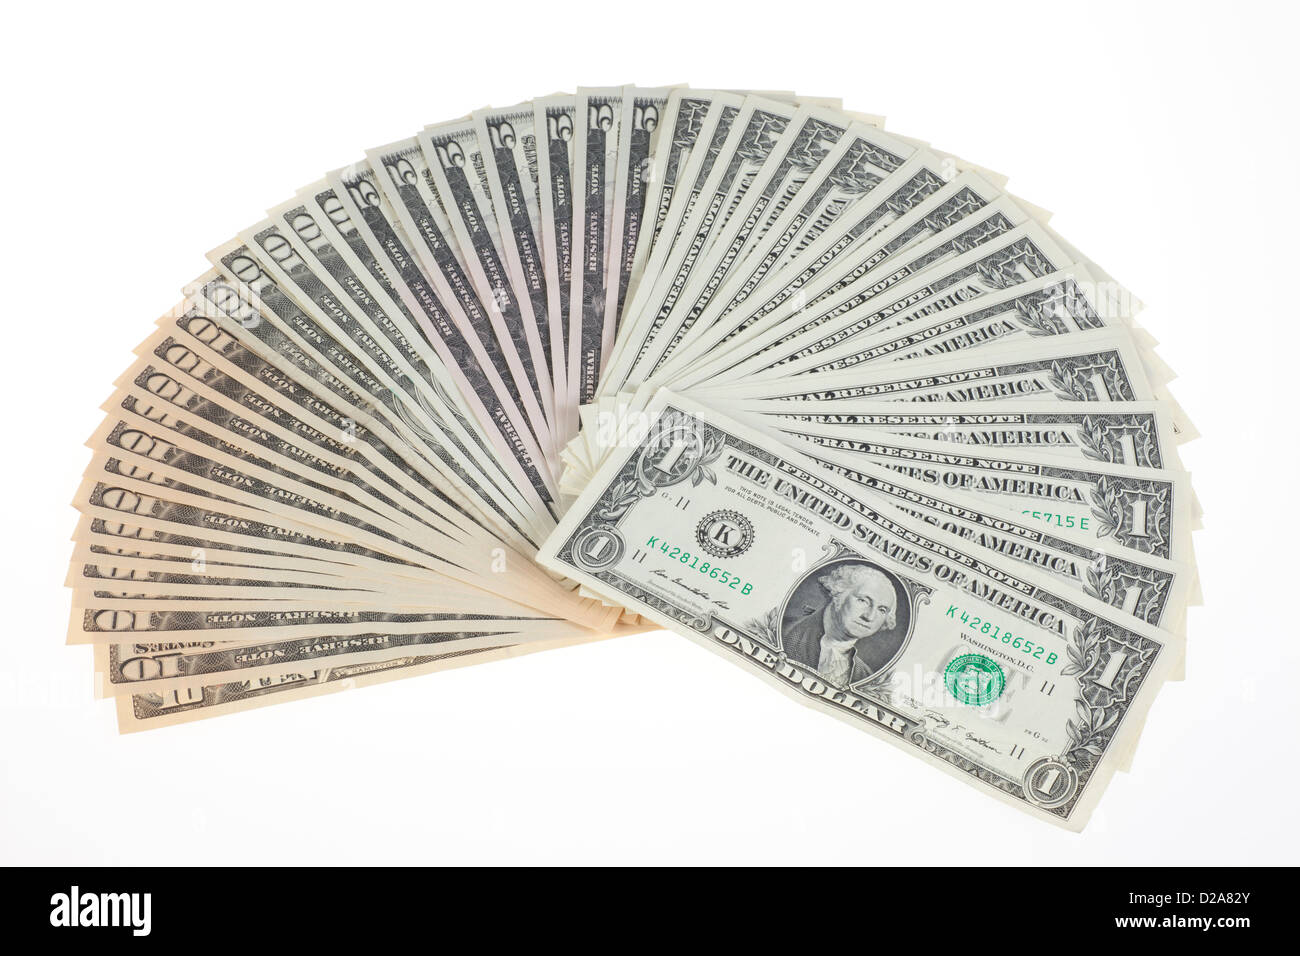 Berlin, Germany, U.S. dollar bills fanned - Stock Image